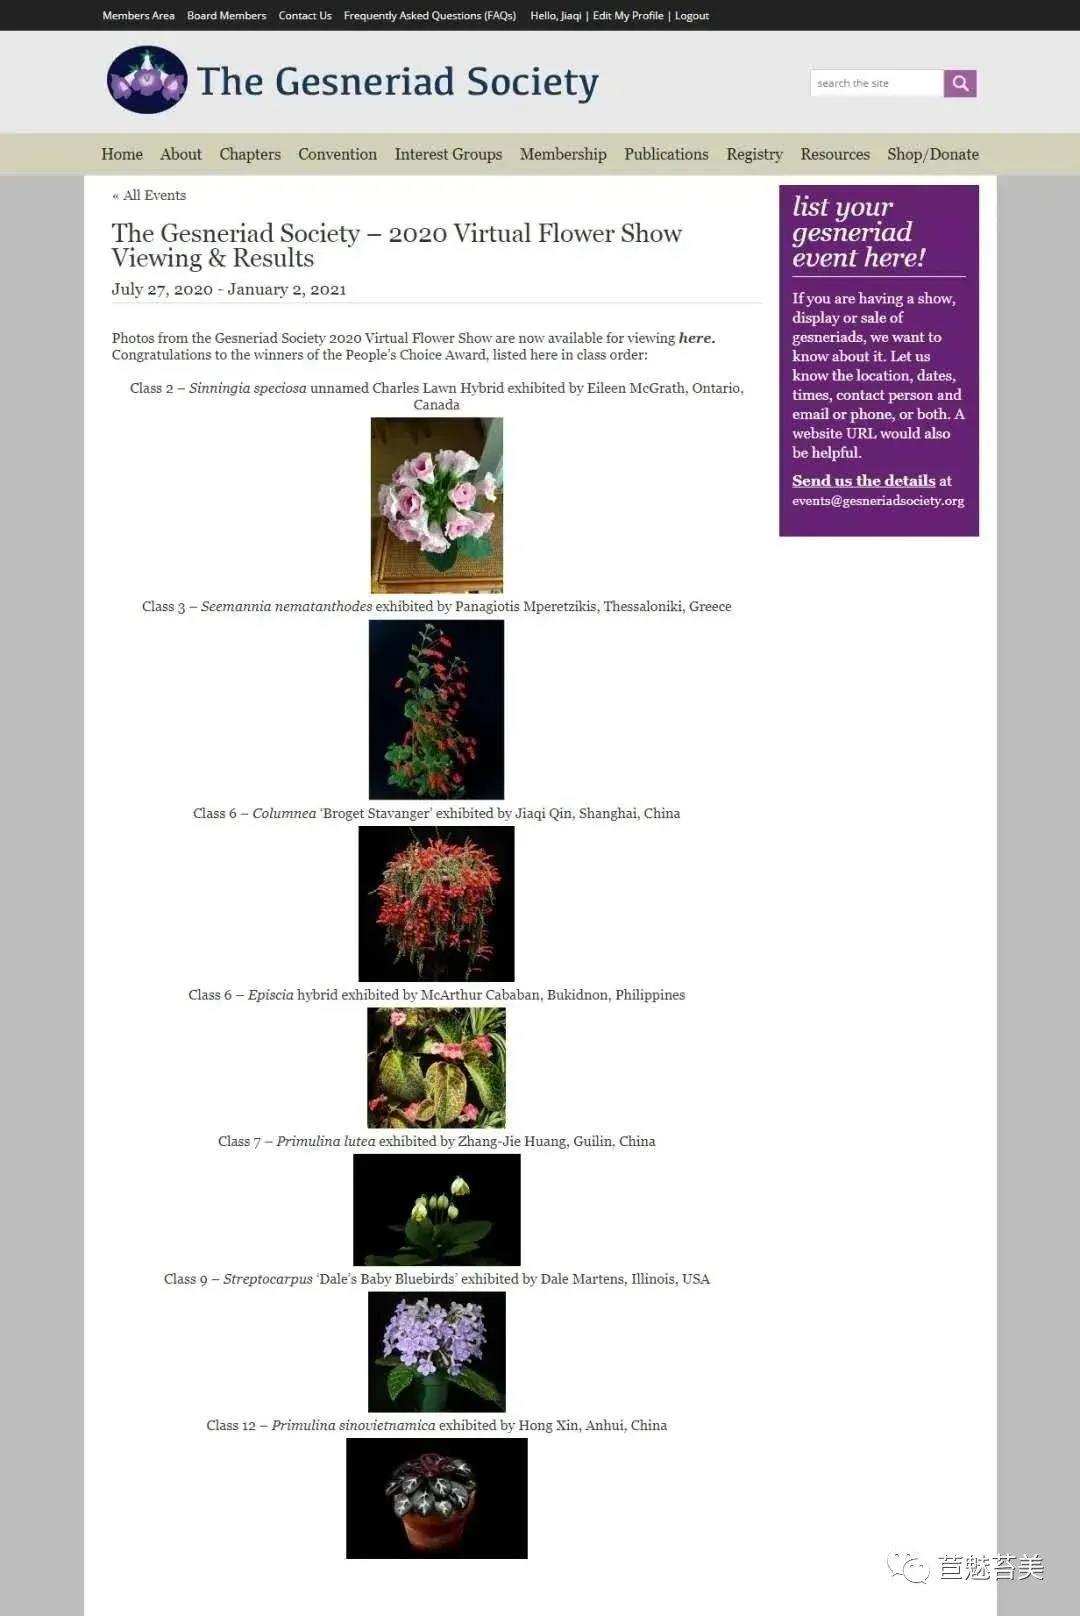 Three Winners from GCCC in The Gesneriad Society 2020 Virtual Flower Show